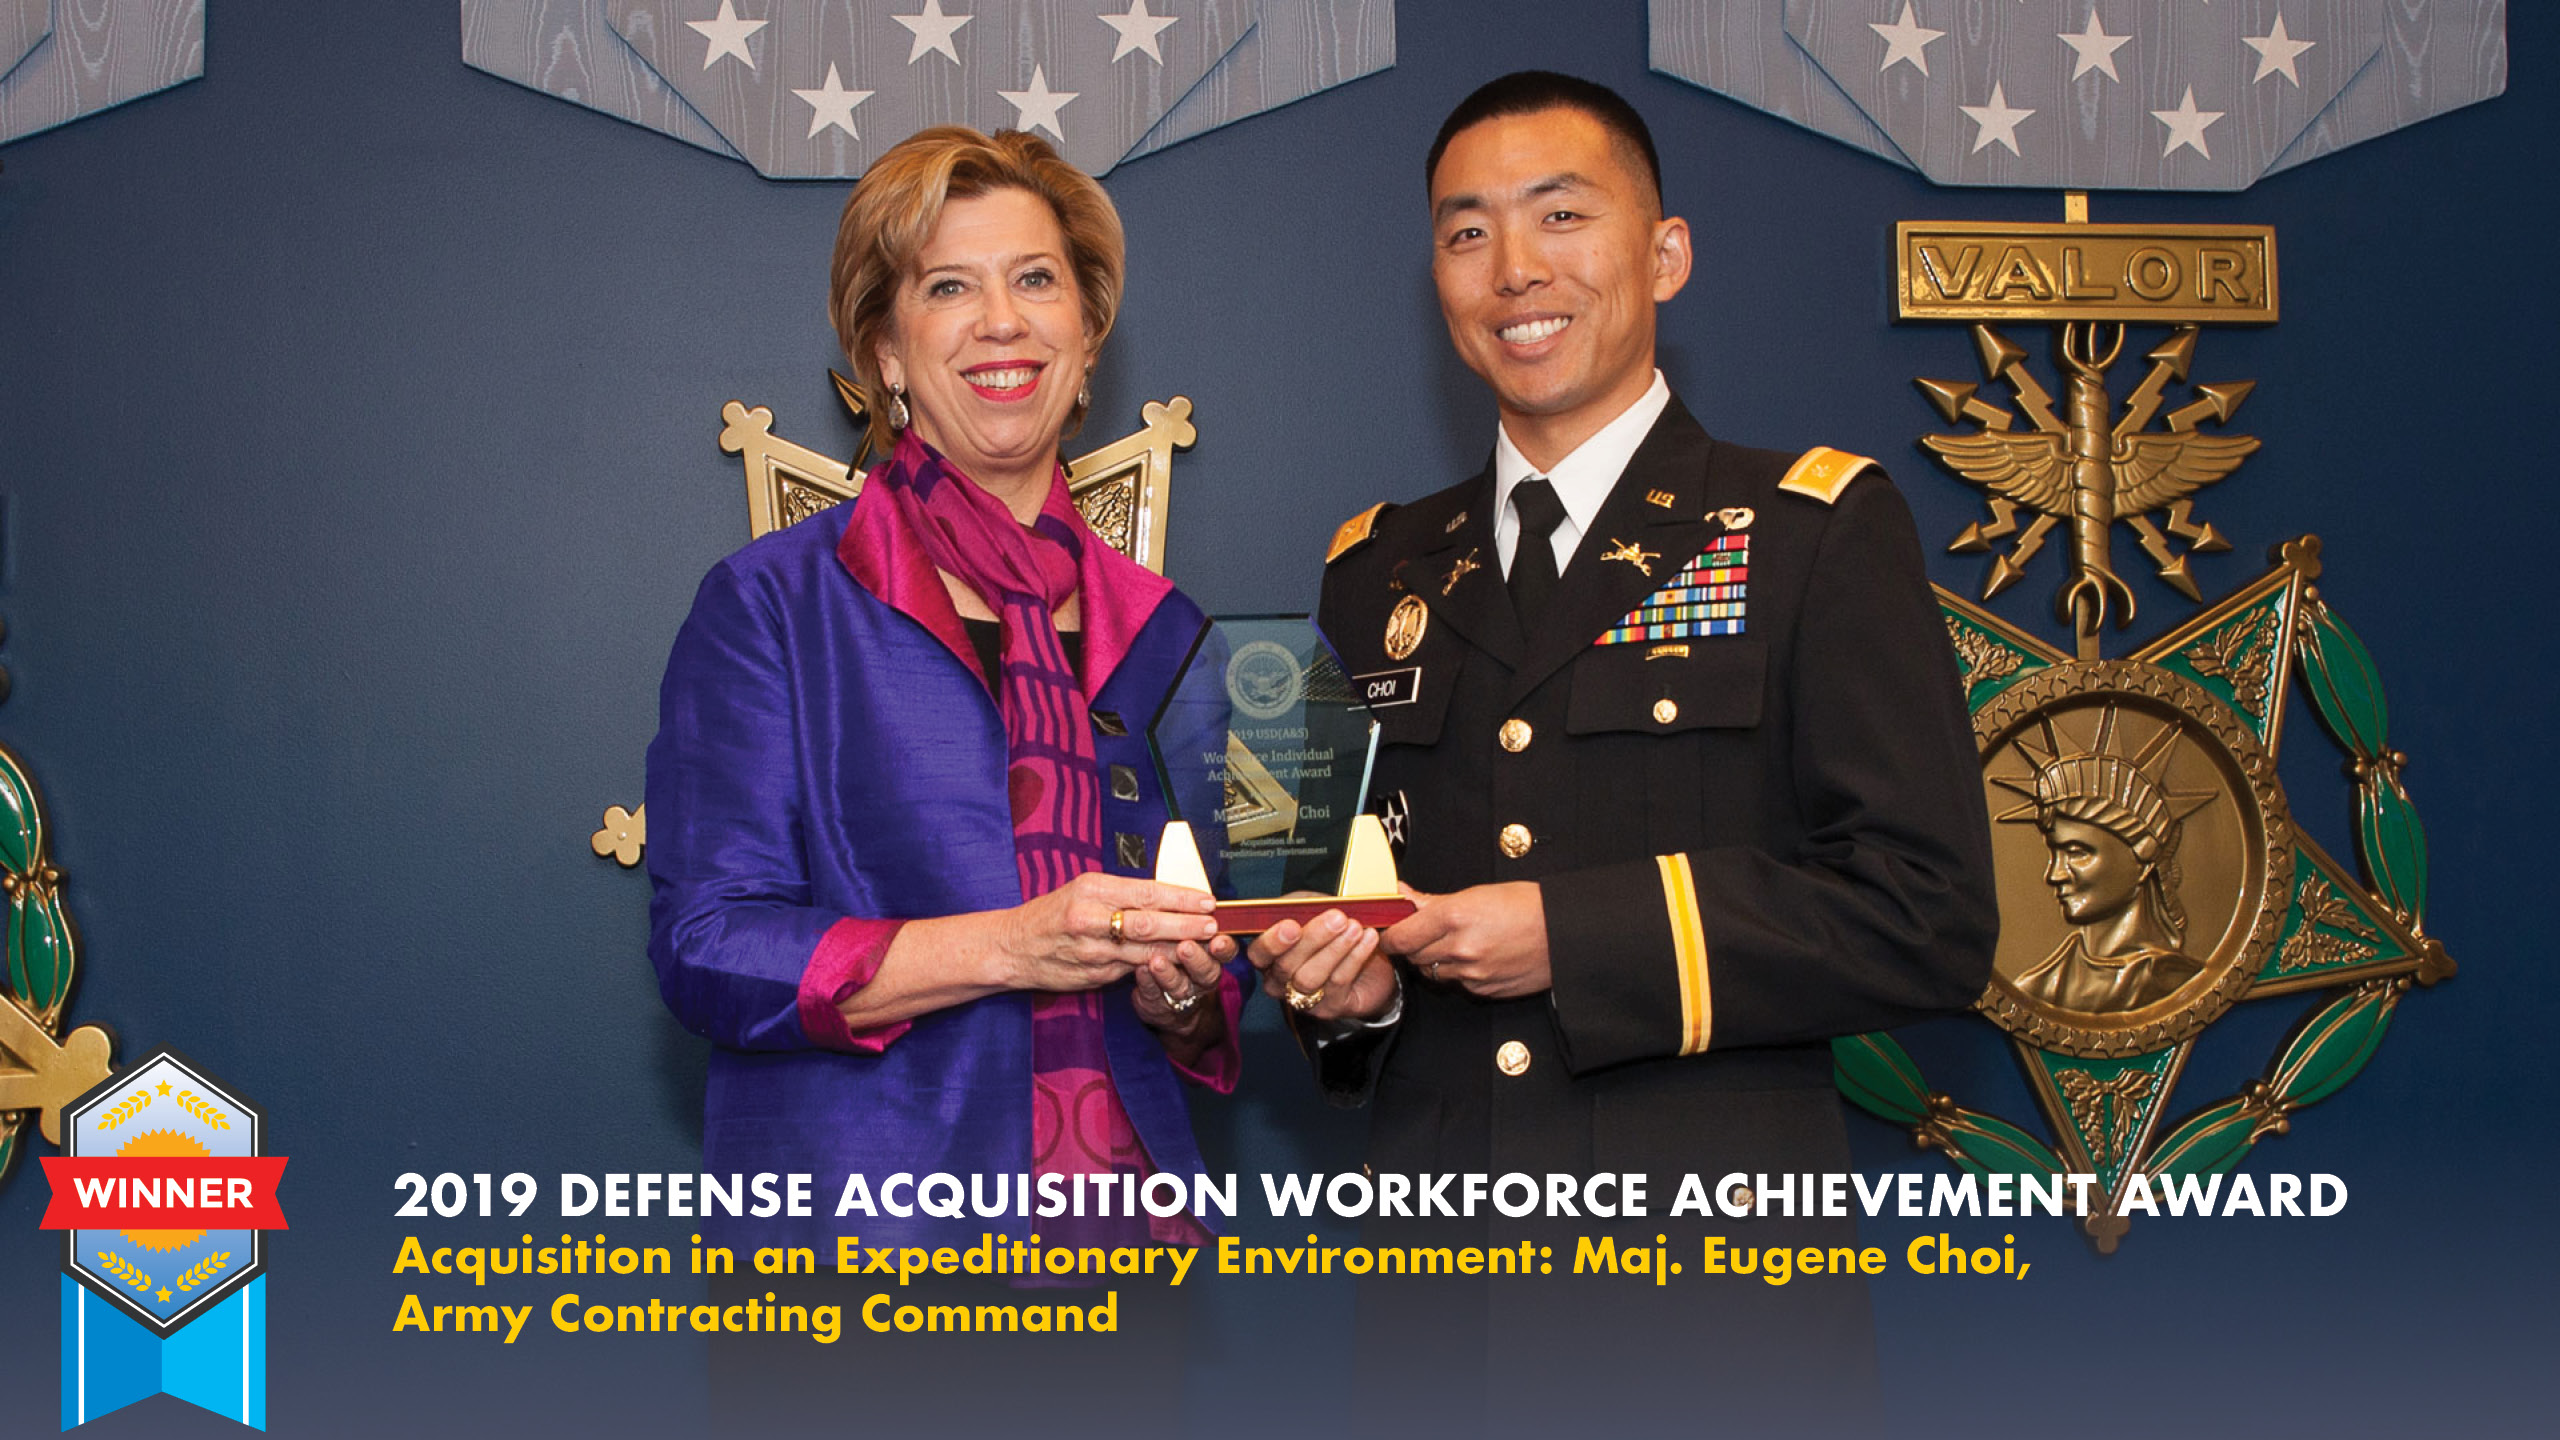 Acquisition in an Expeditionary Environment Winner